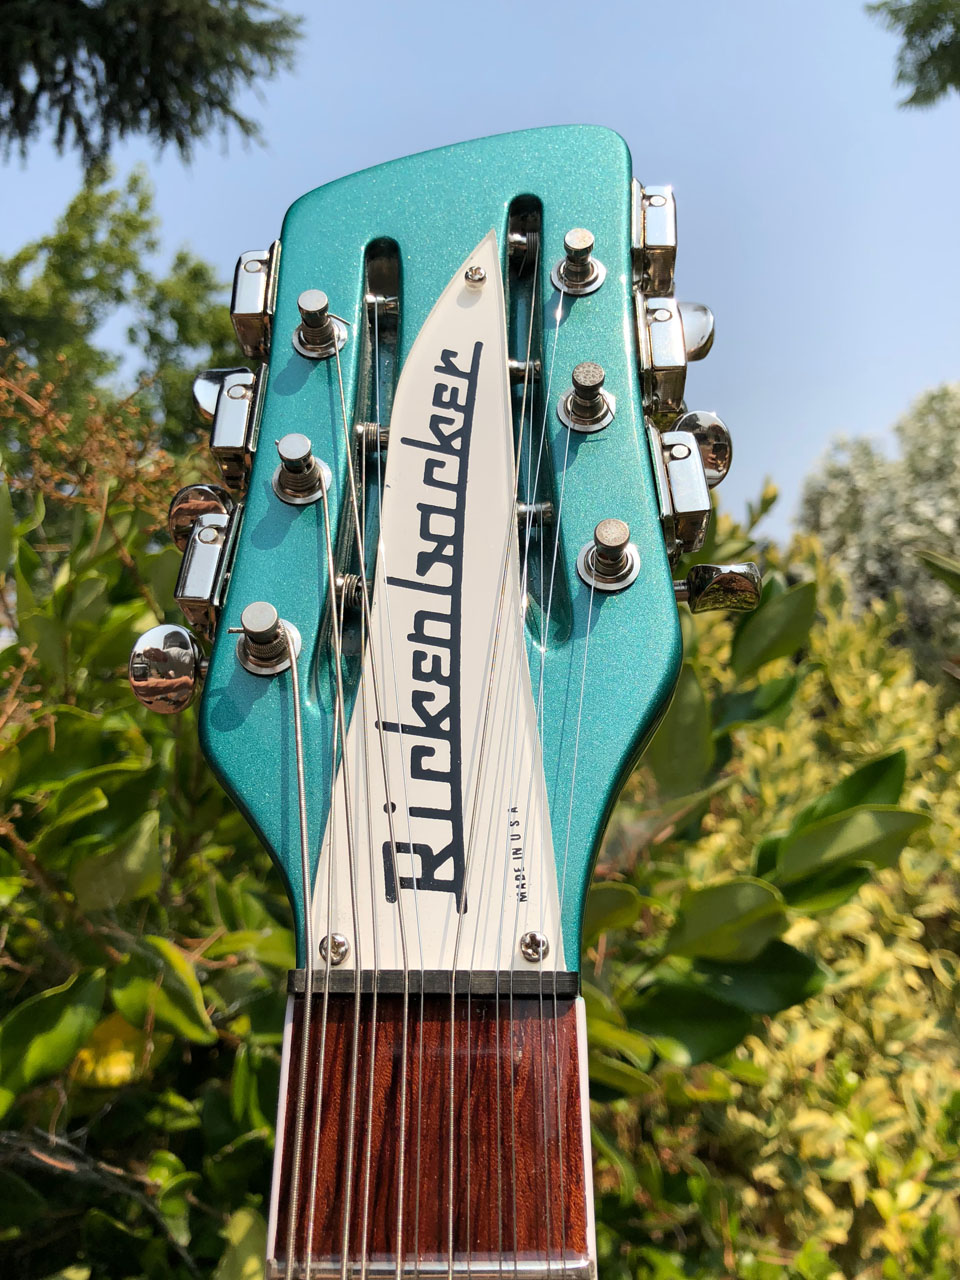 FINISH ON HEADSTOCK AND NAMEPLATE SHINE IN THE SUNLIGHT